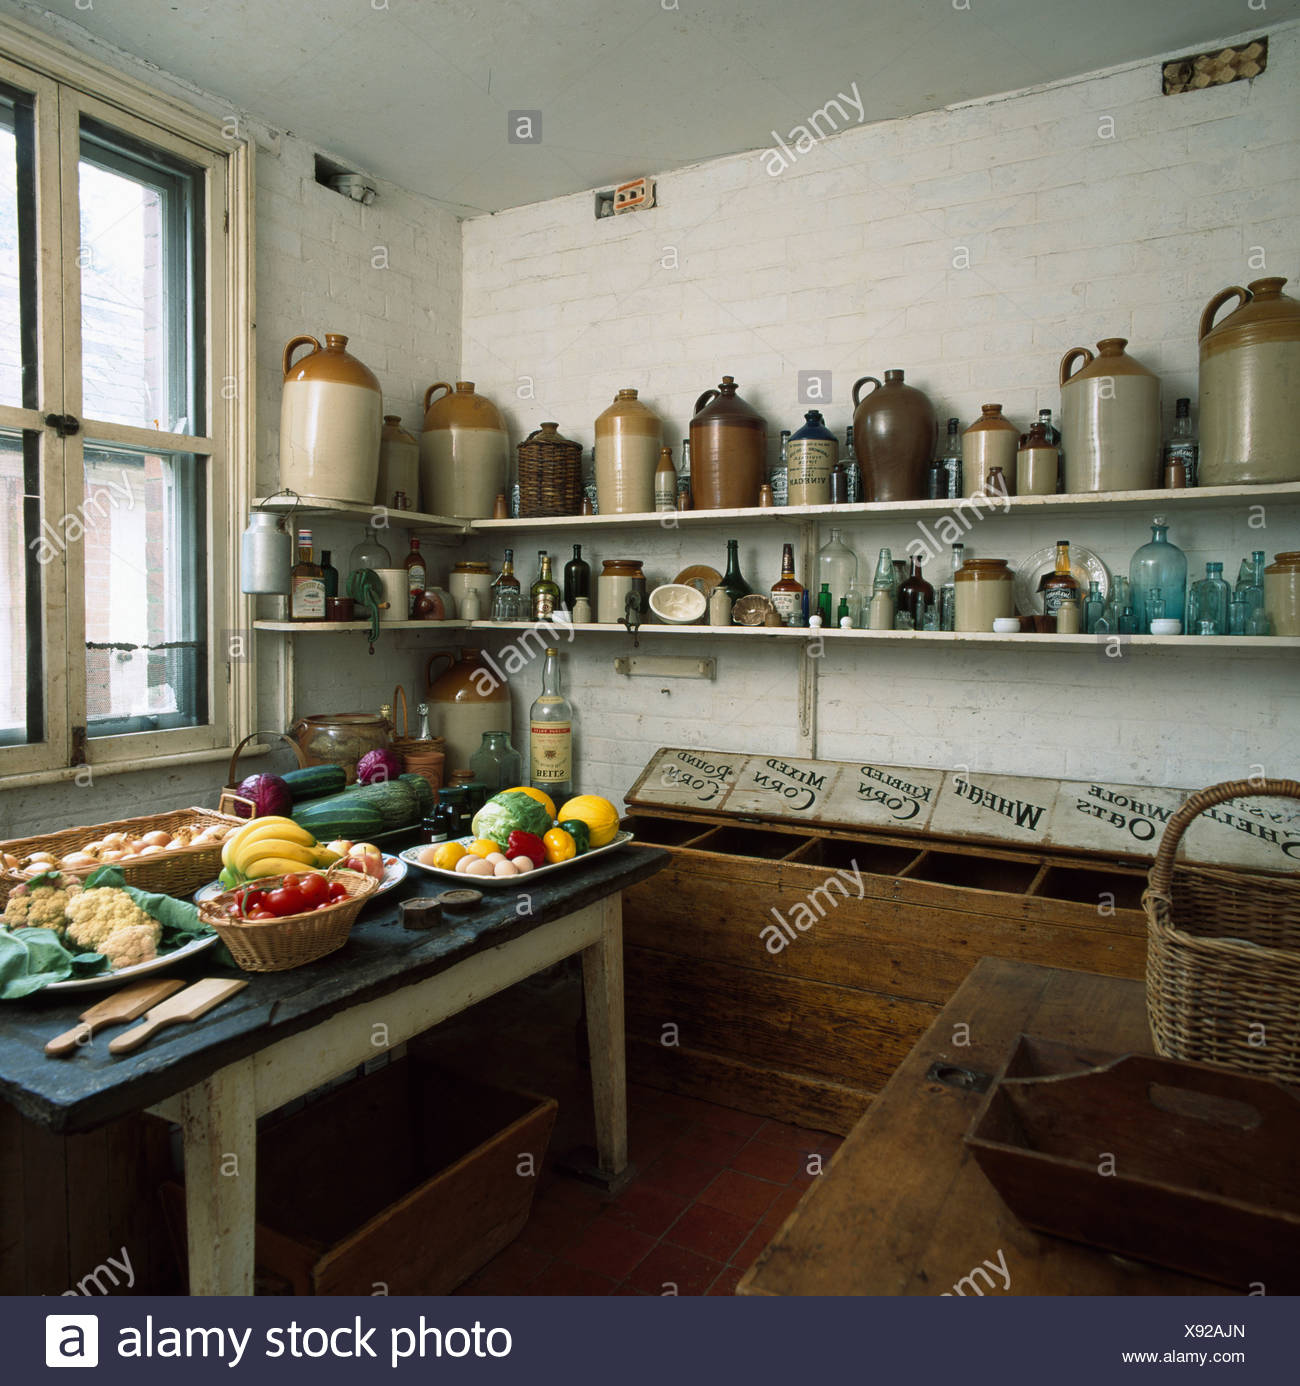 Earthenware Jars On Shelves In Old Fashioned Larder With